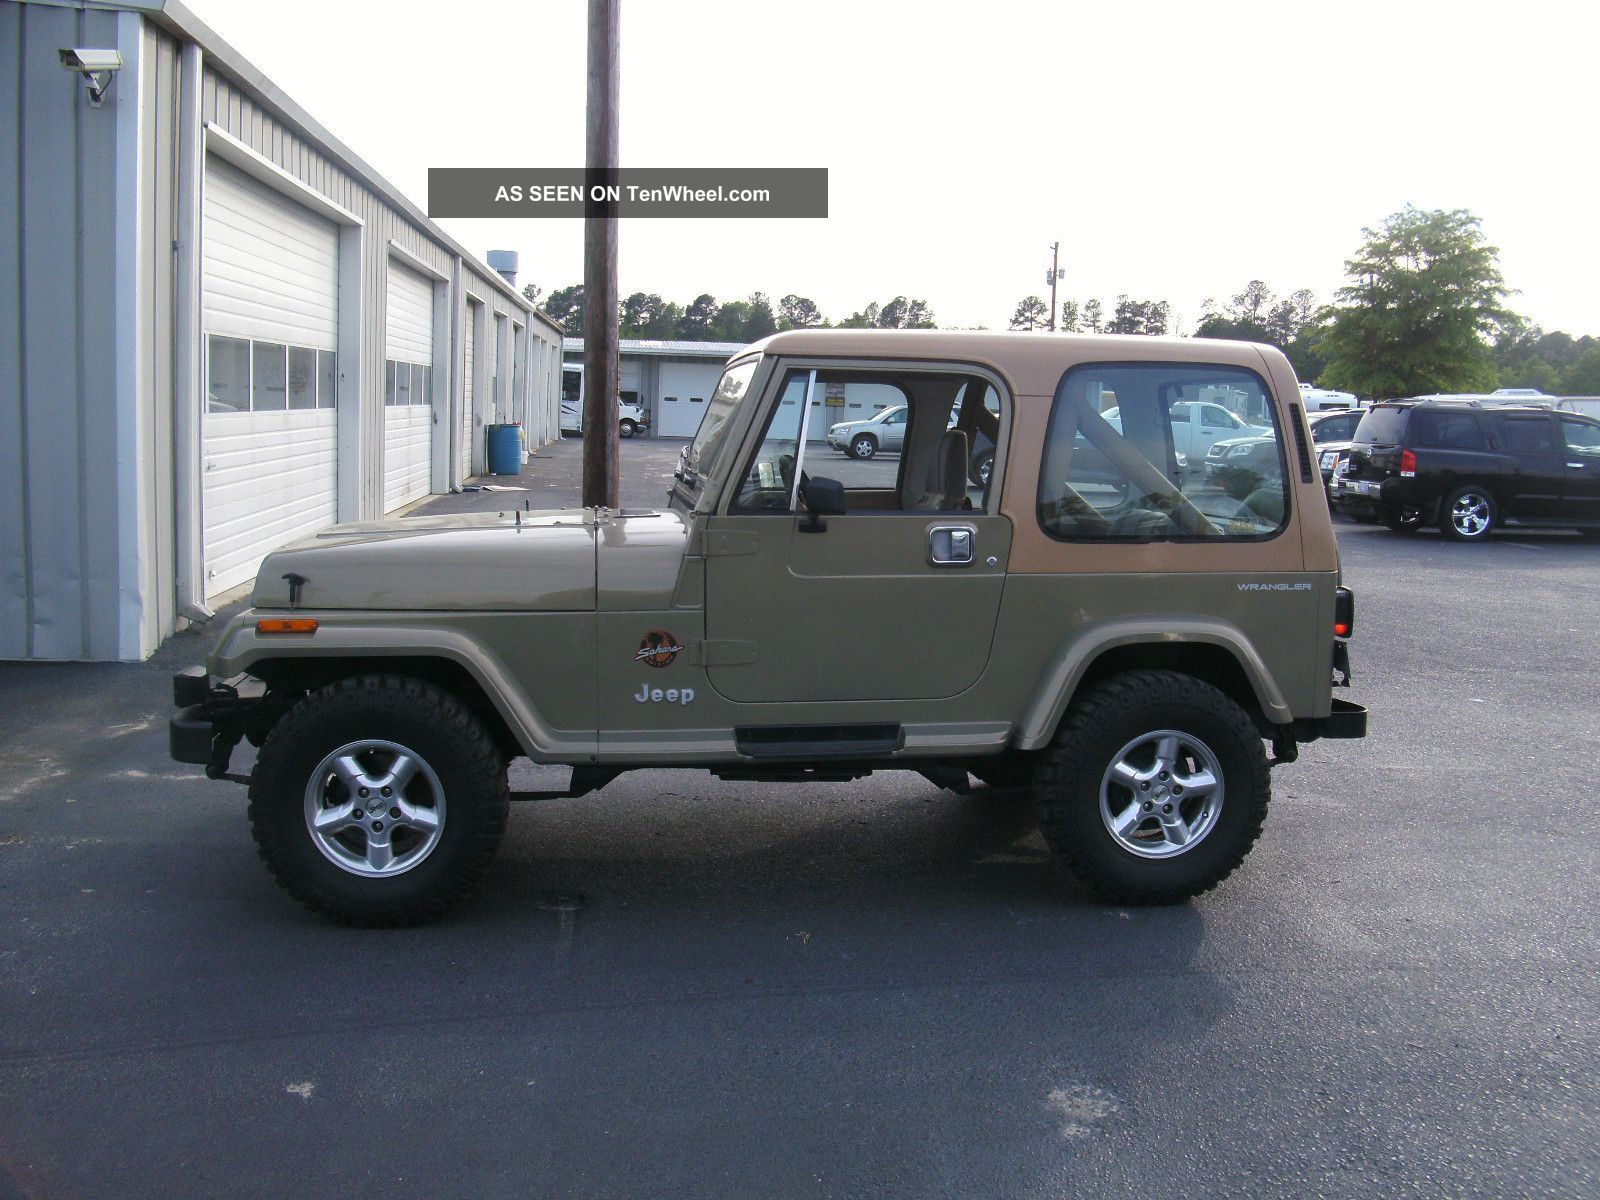 1988 jeep wrangler hard top full hard doors polished wheels photos and info tenwheel